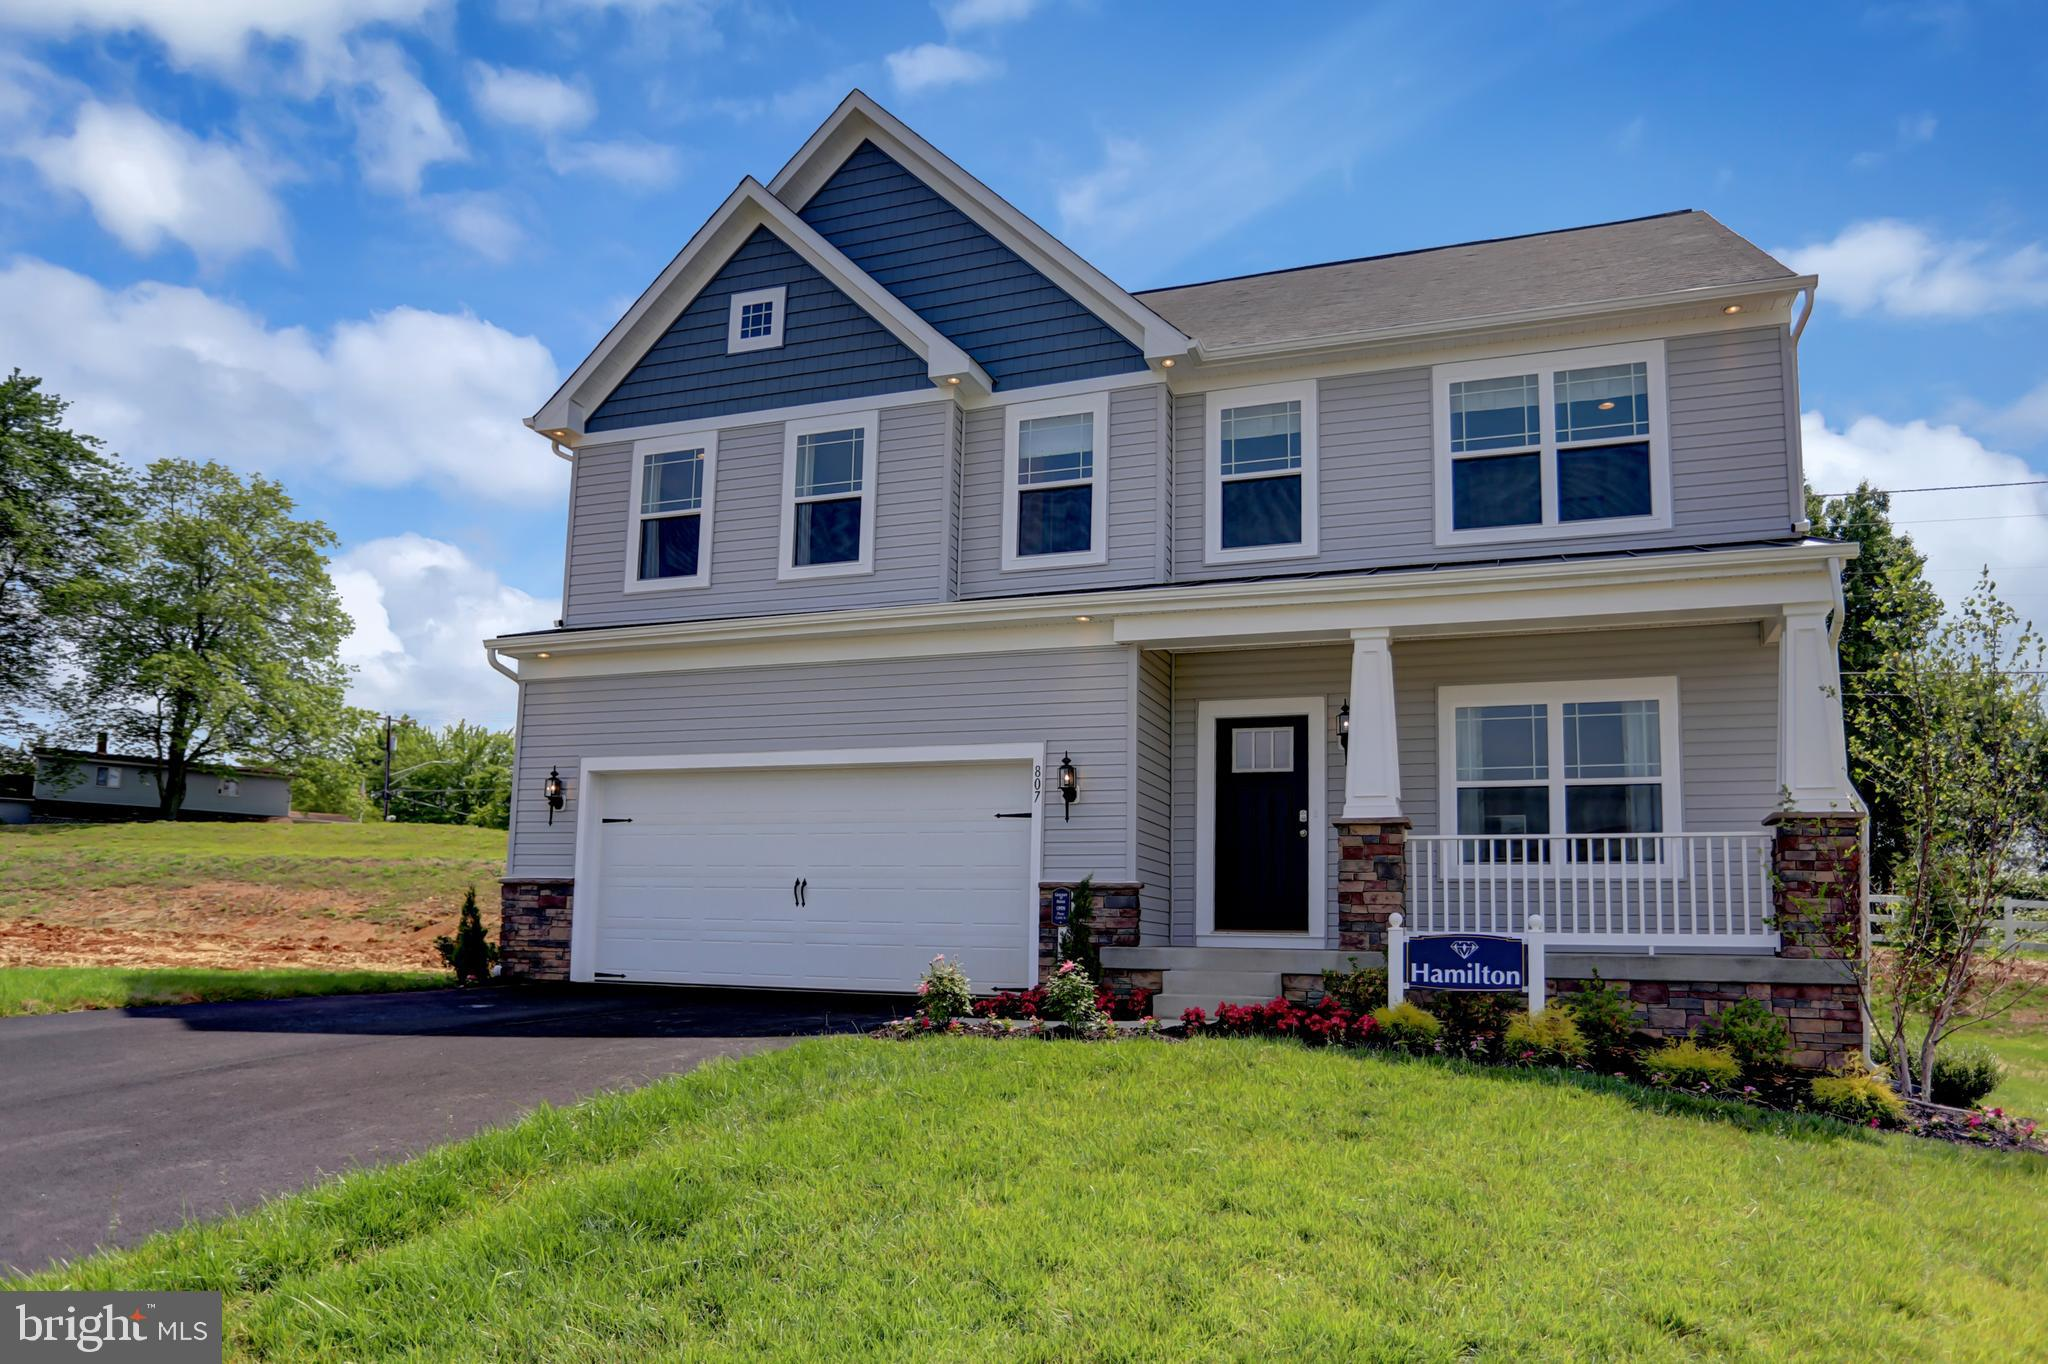 Gemcraft Homes to be built house in Abingdon.  Many floor plans to choose from.  Starting in the hig